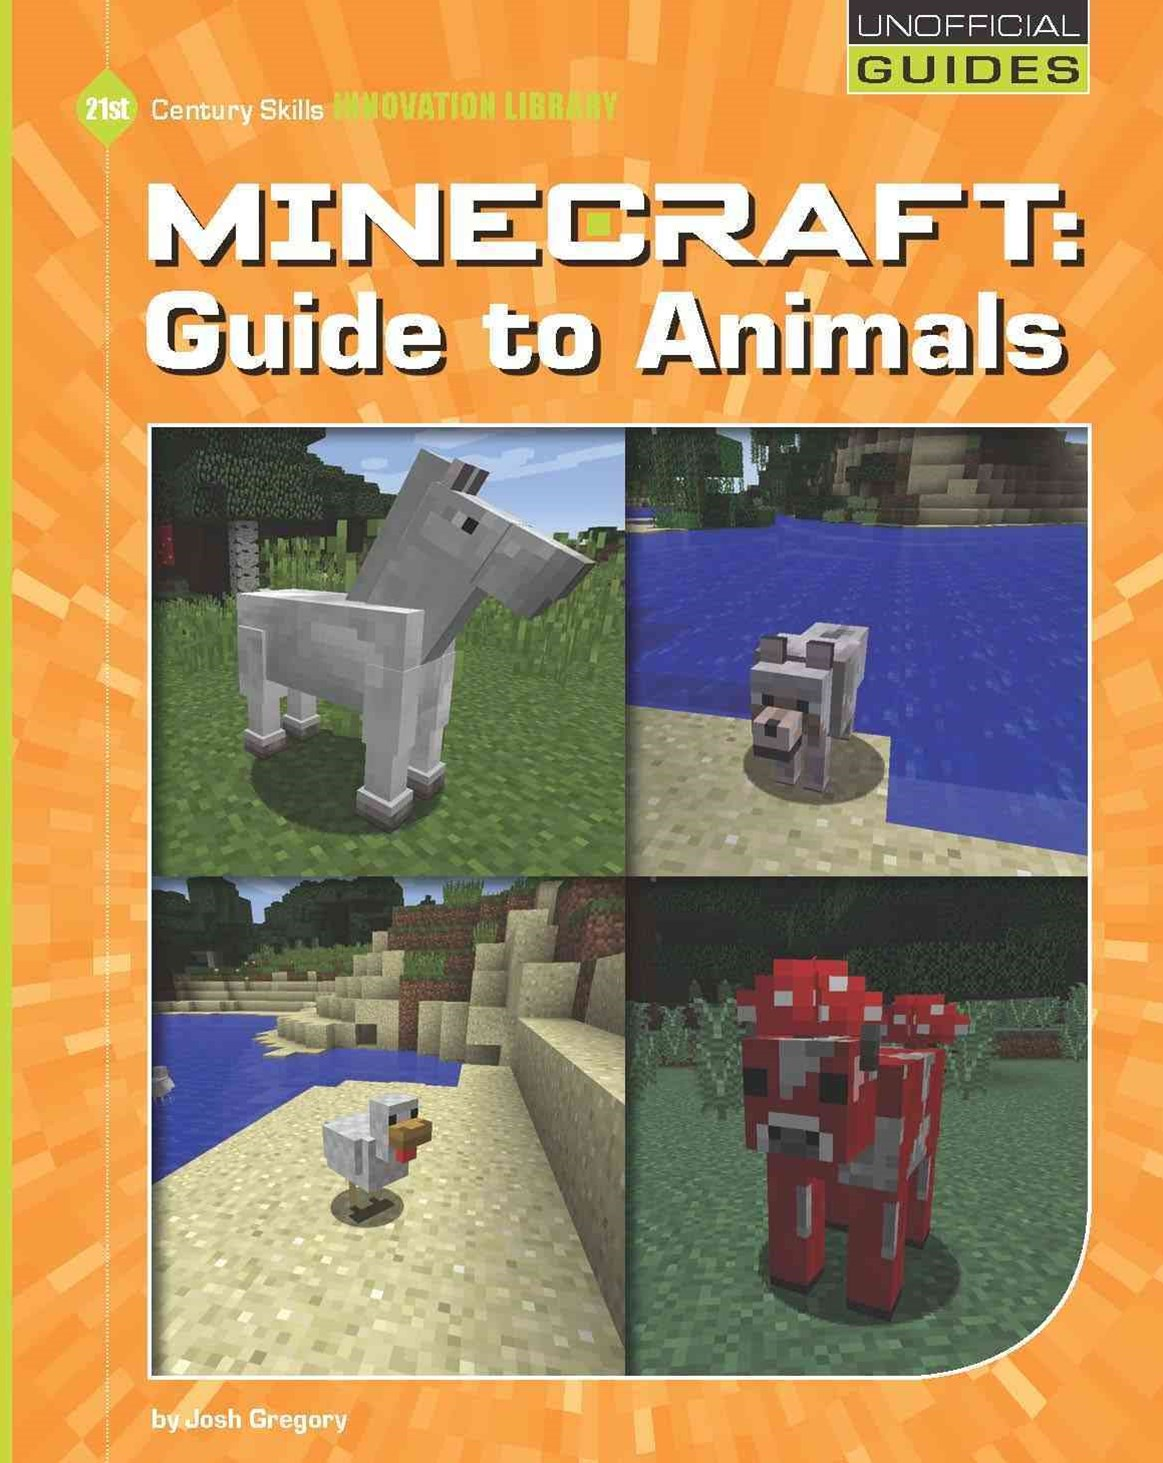 21st Century Skills Innovation Library: Minecraft: Guide to Animals